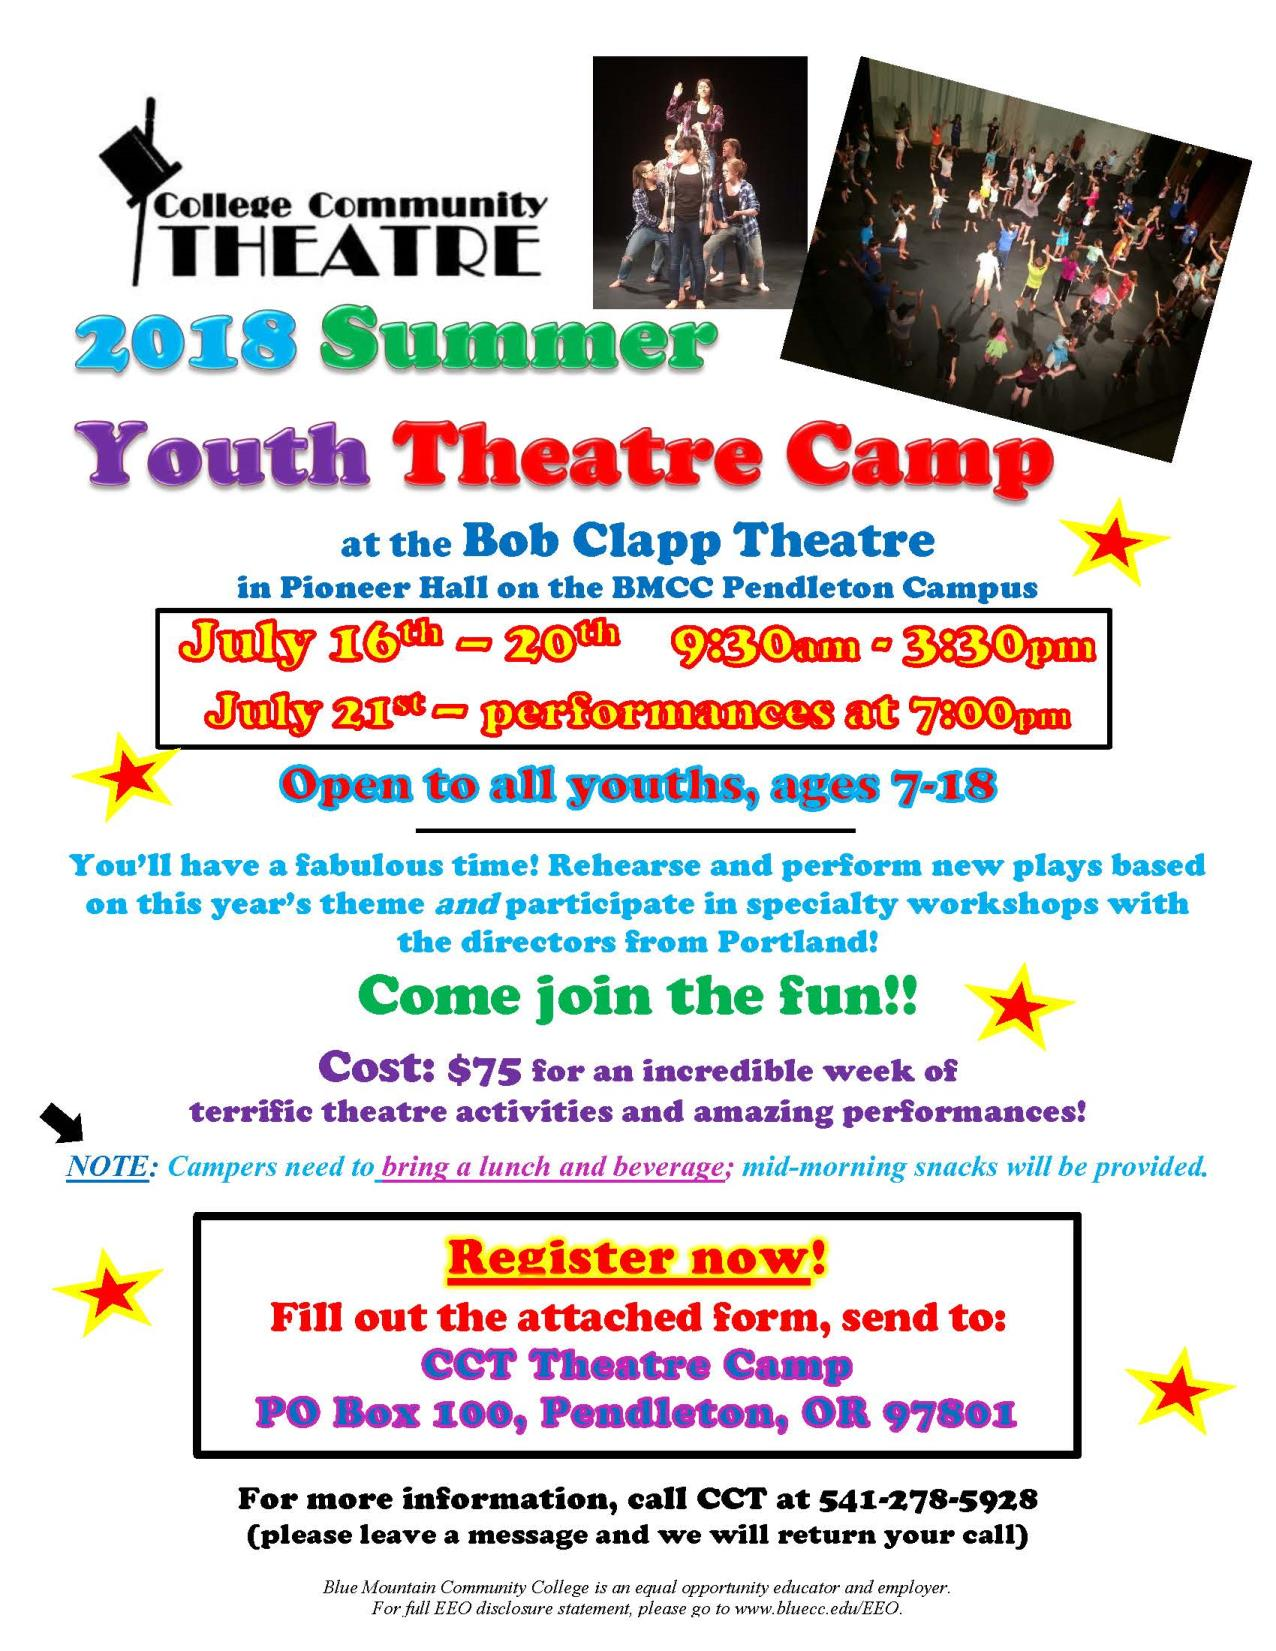 Theatre Camp Flyer 2018